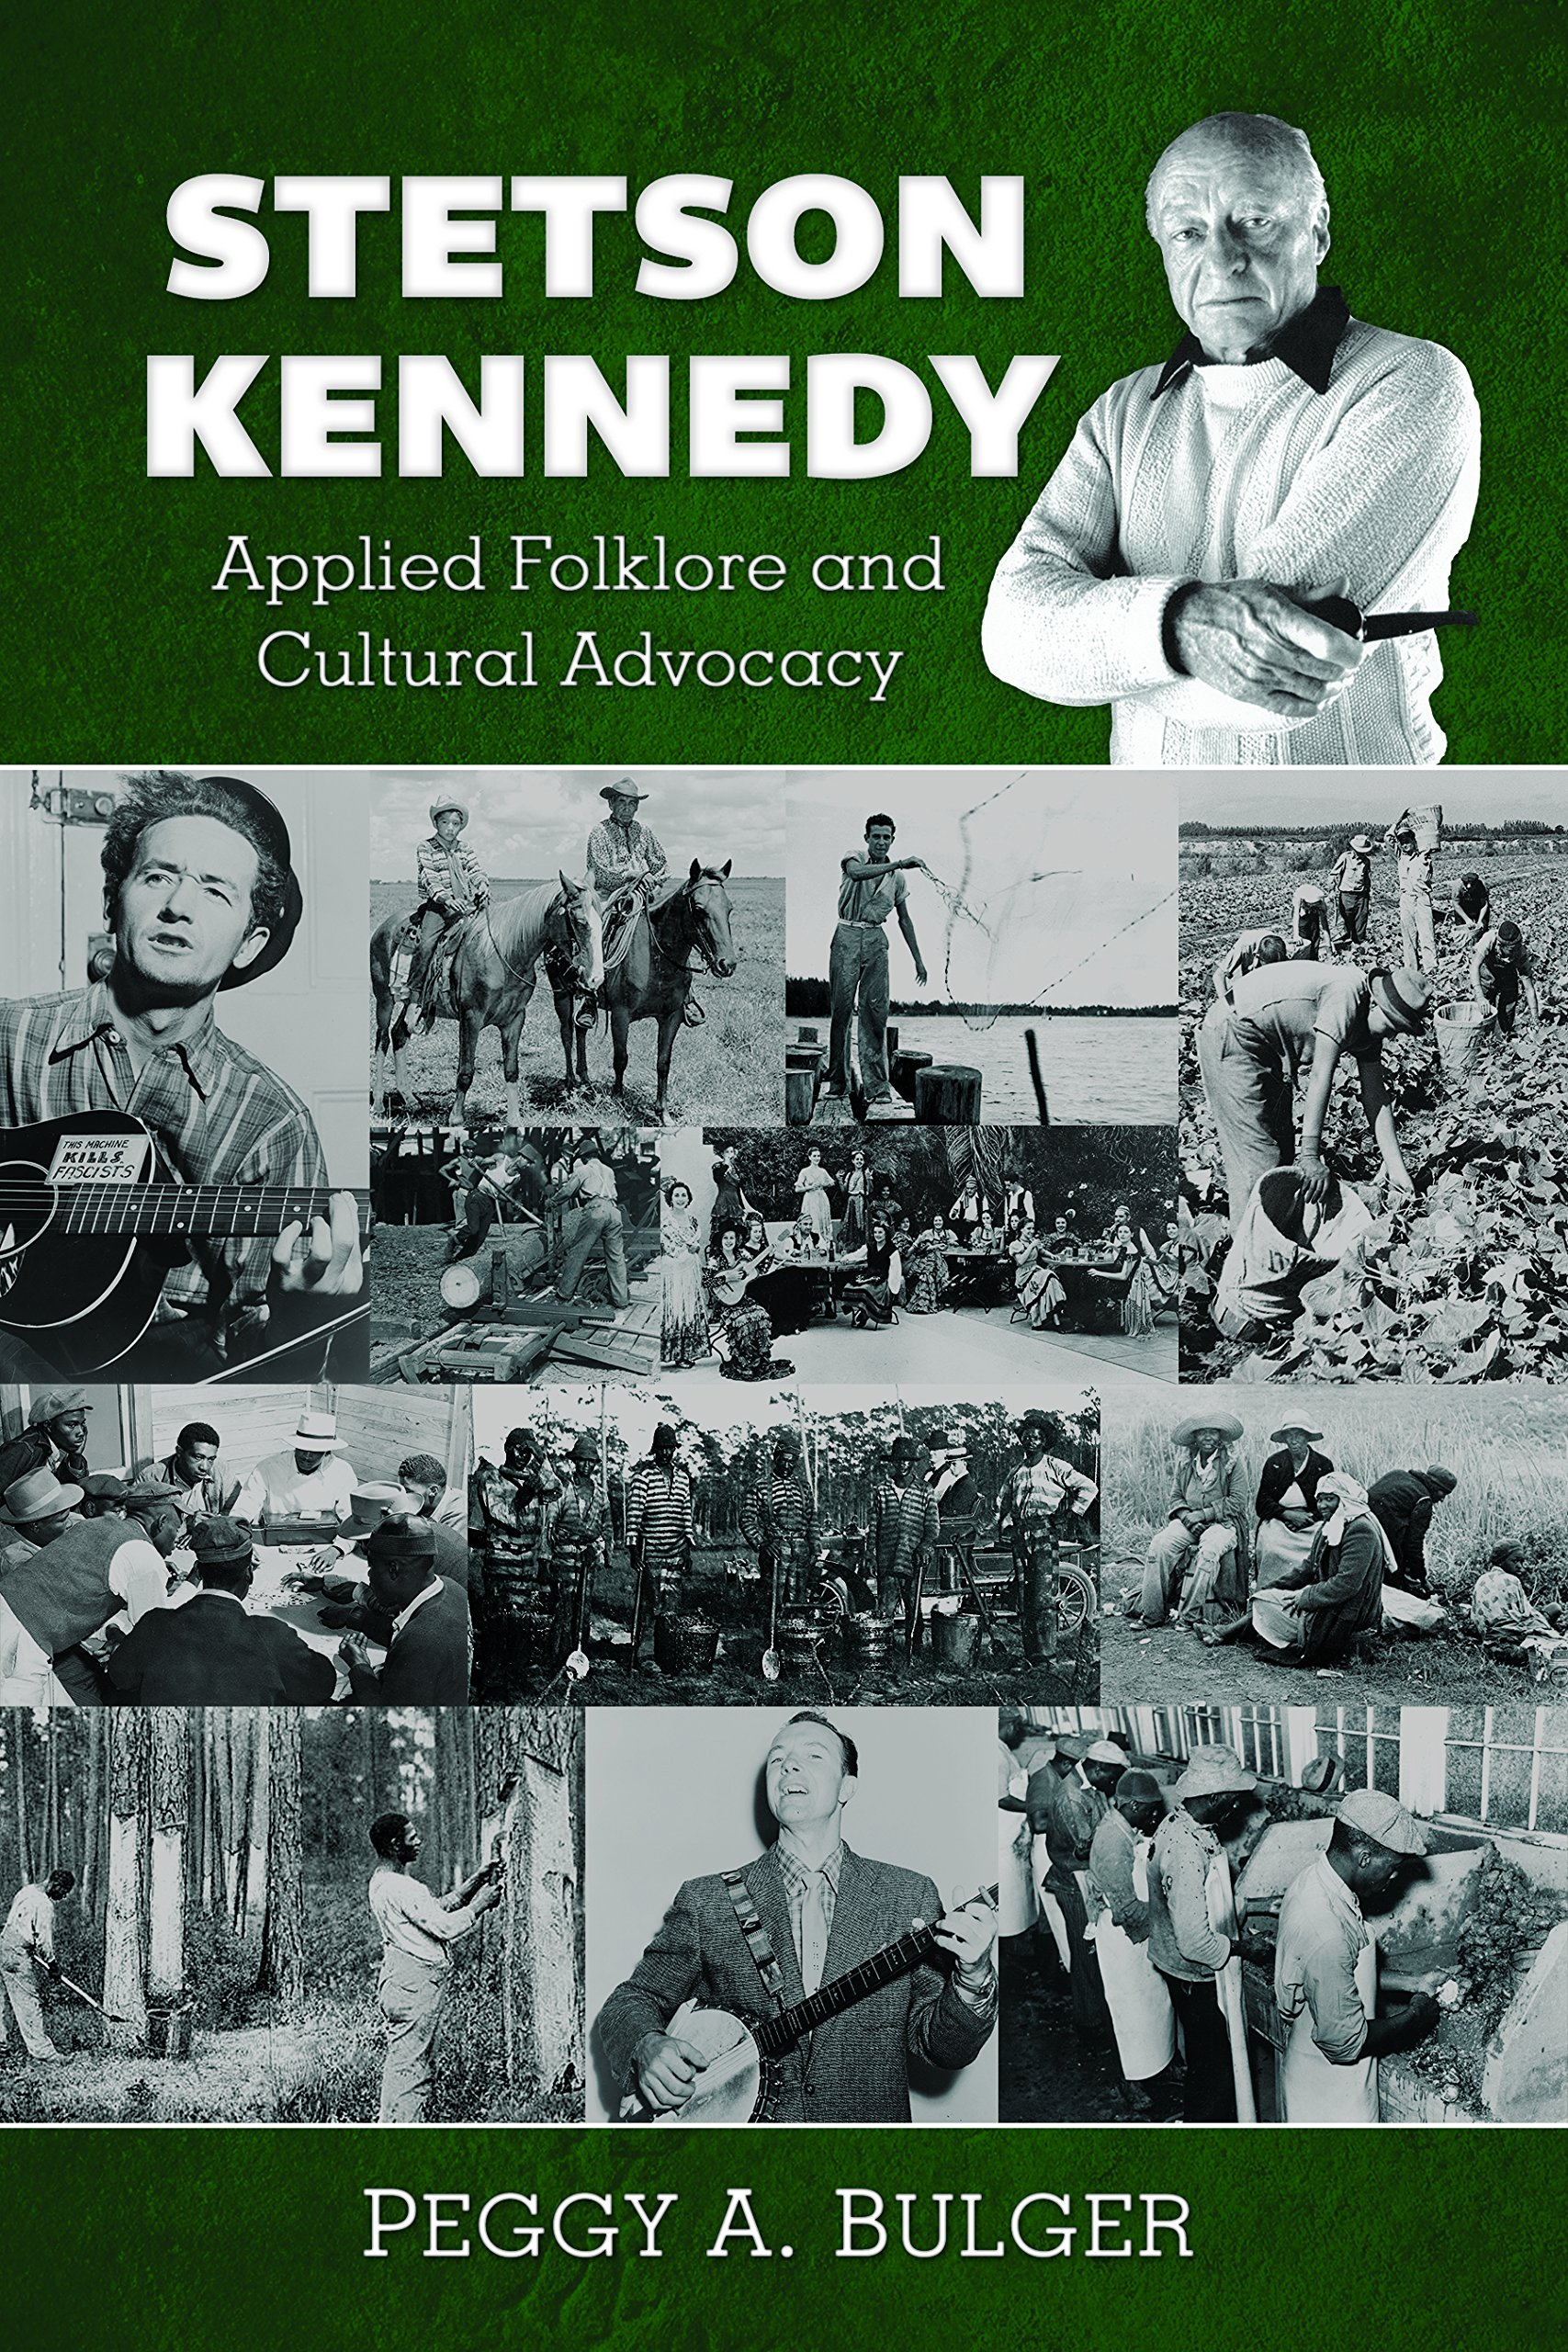 Stetson Kennedy: Applied Folklore and Cultural Advocacy